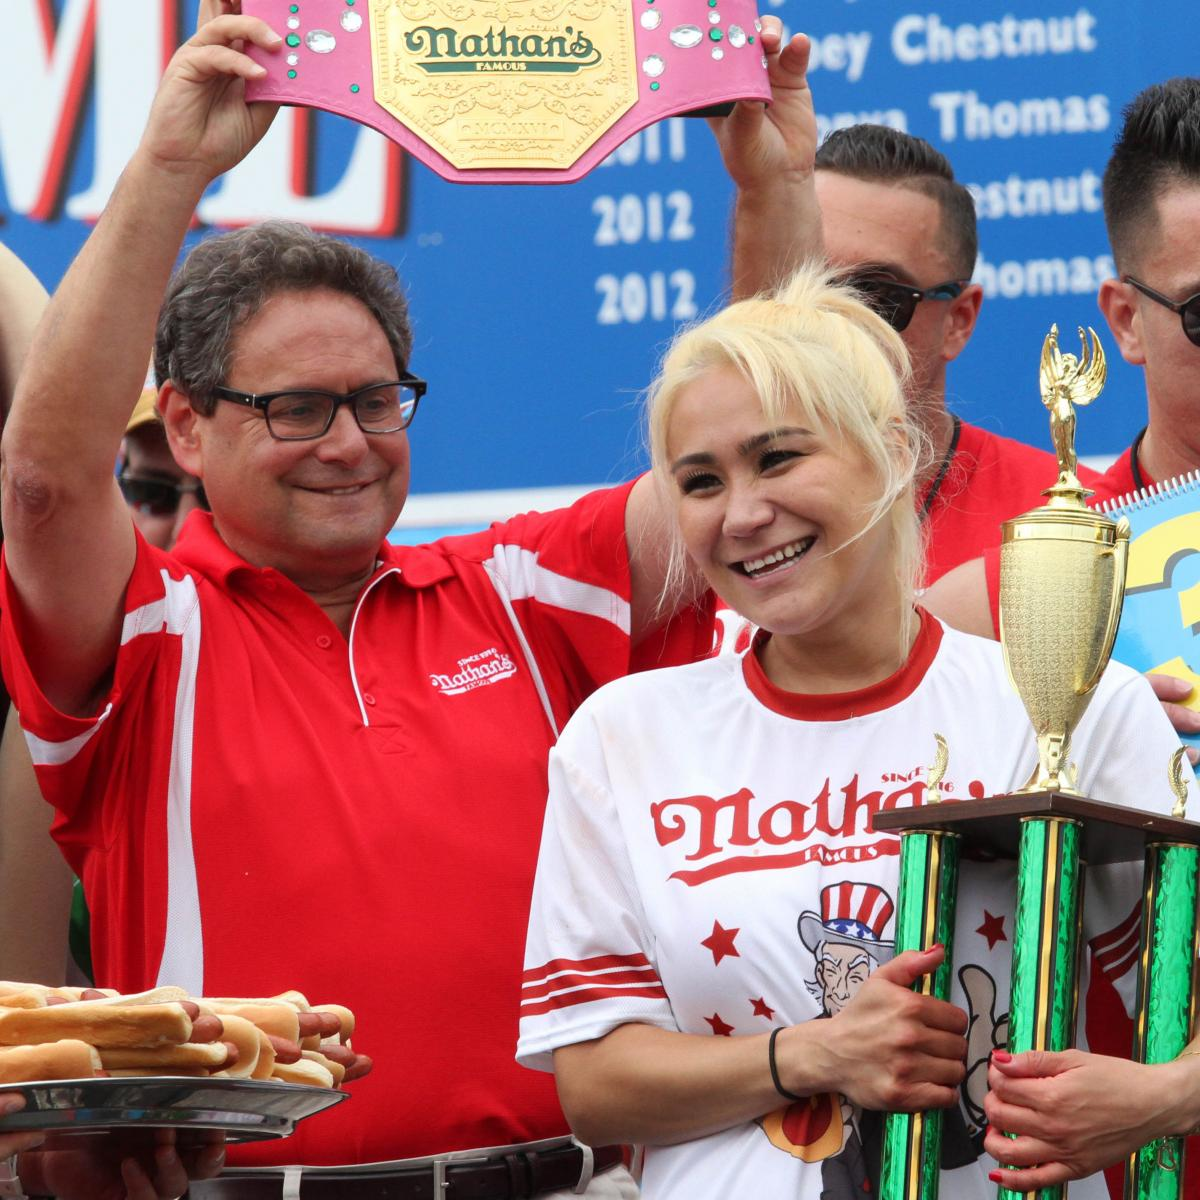 Purse For Hot Dog Eating Contest